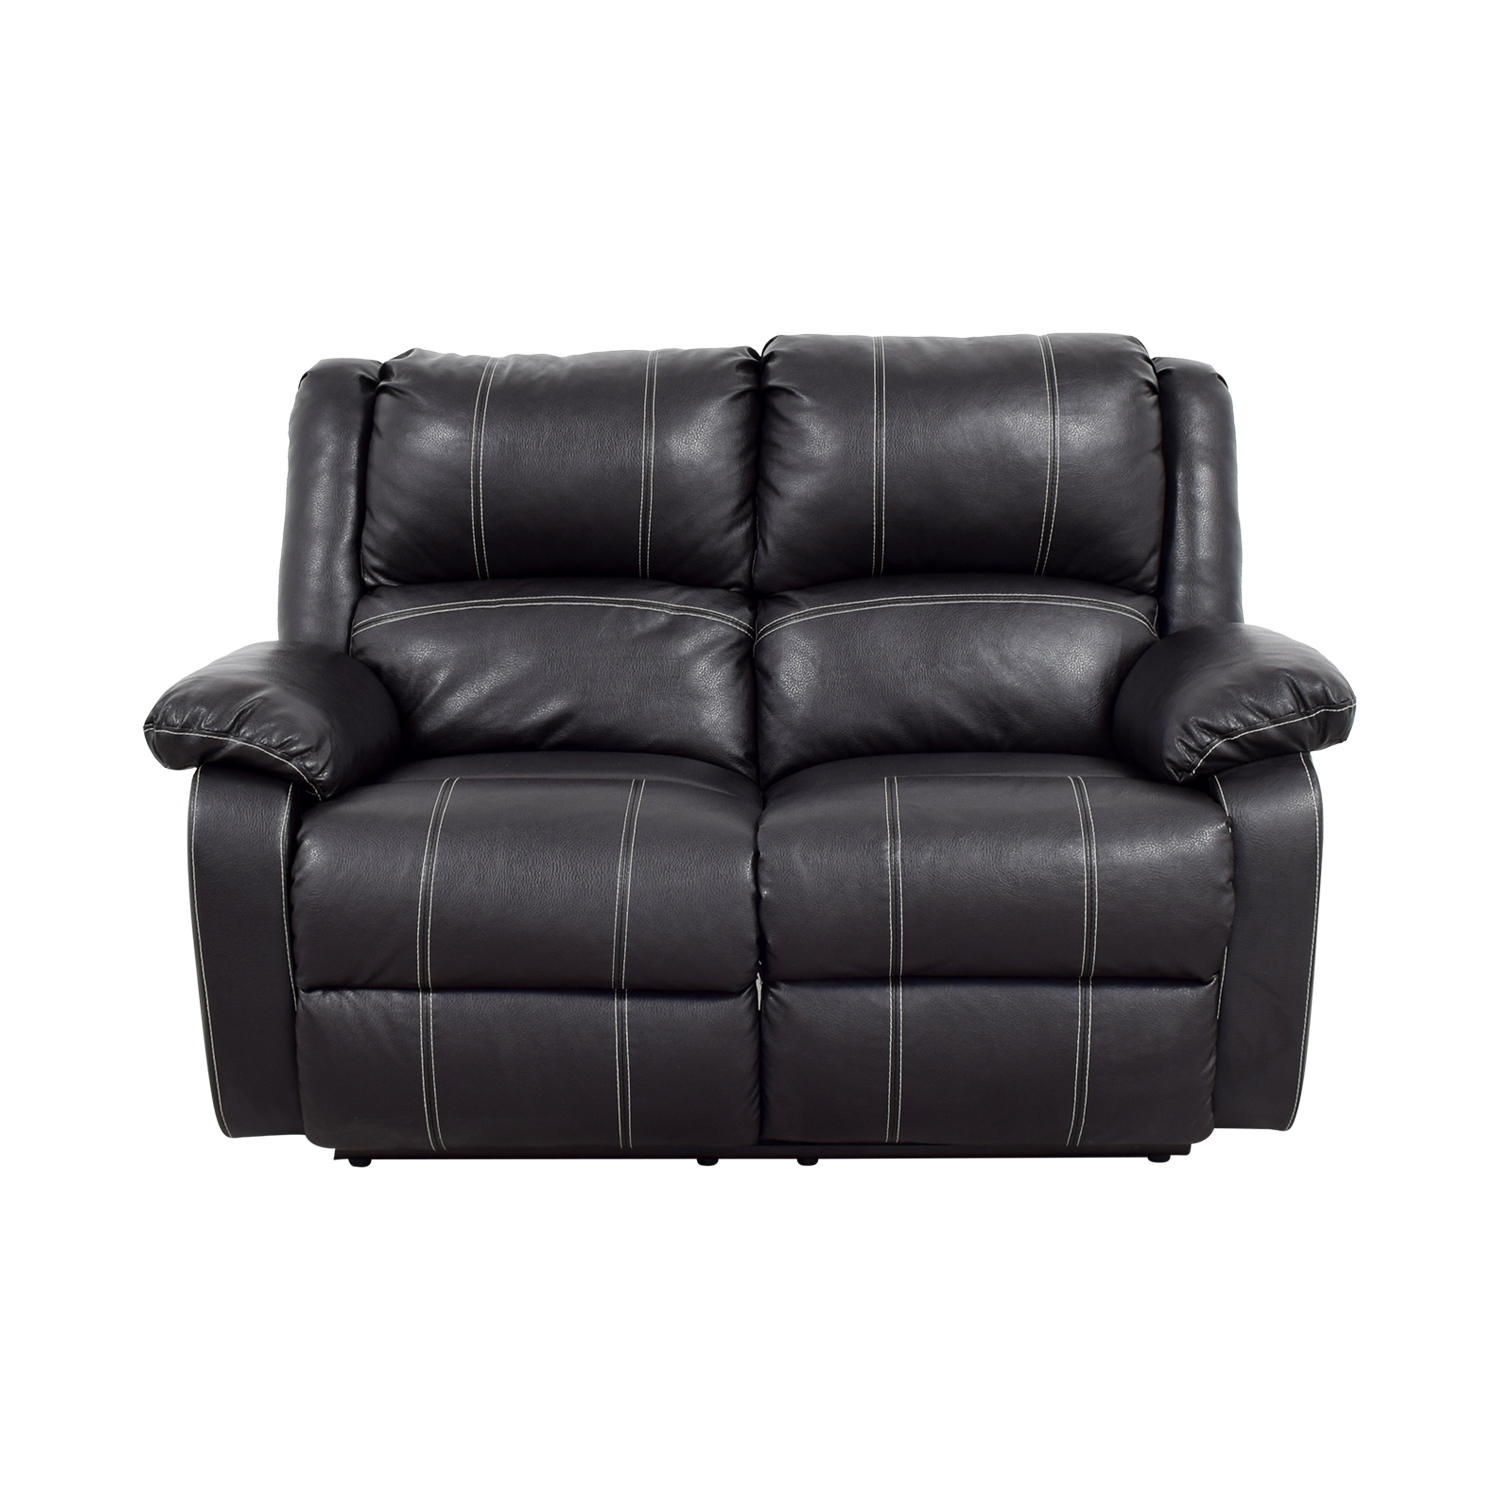 Buy reclining love seat used furniture on sale Reclining loveseat sale